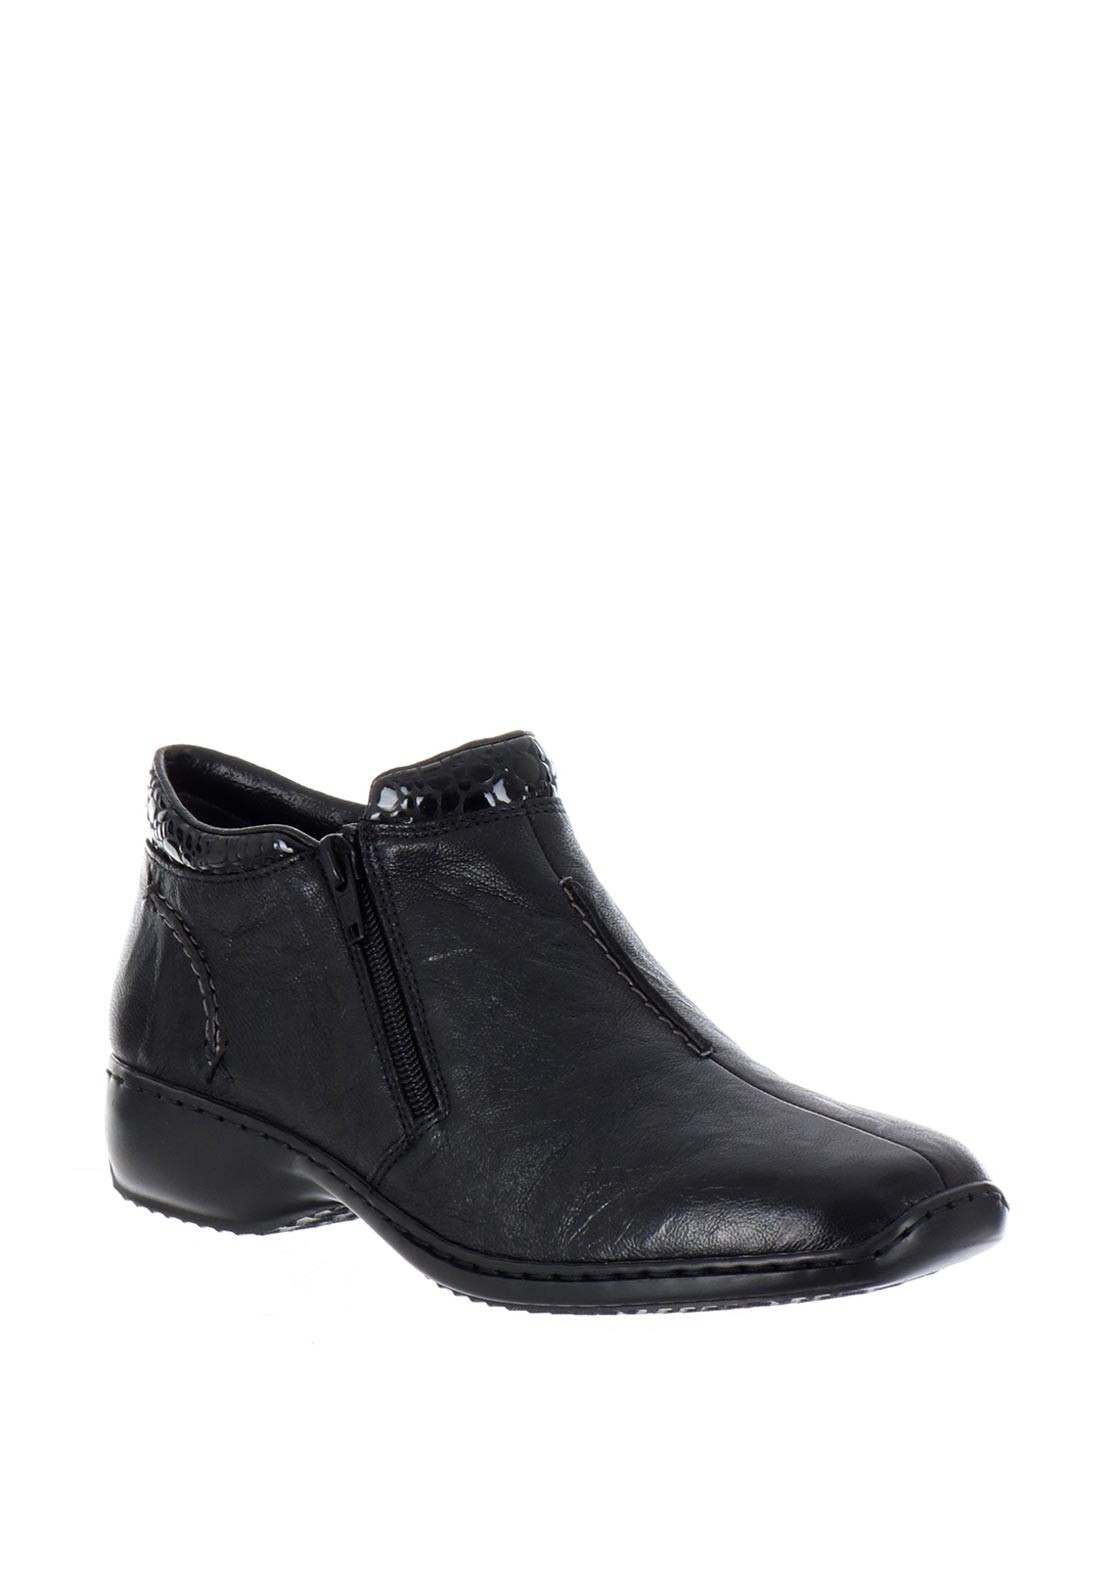 Rieker Womens Leather Patent Cuff Ankle